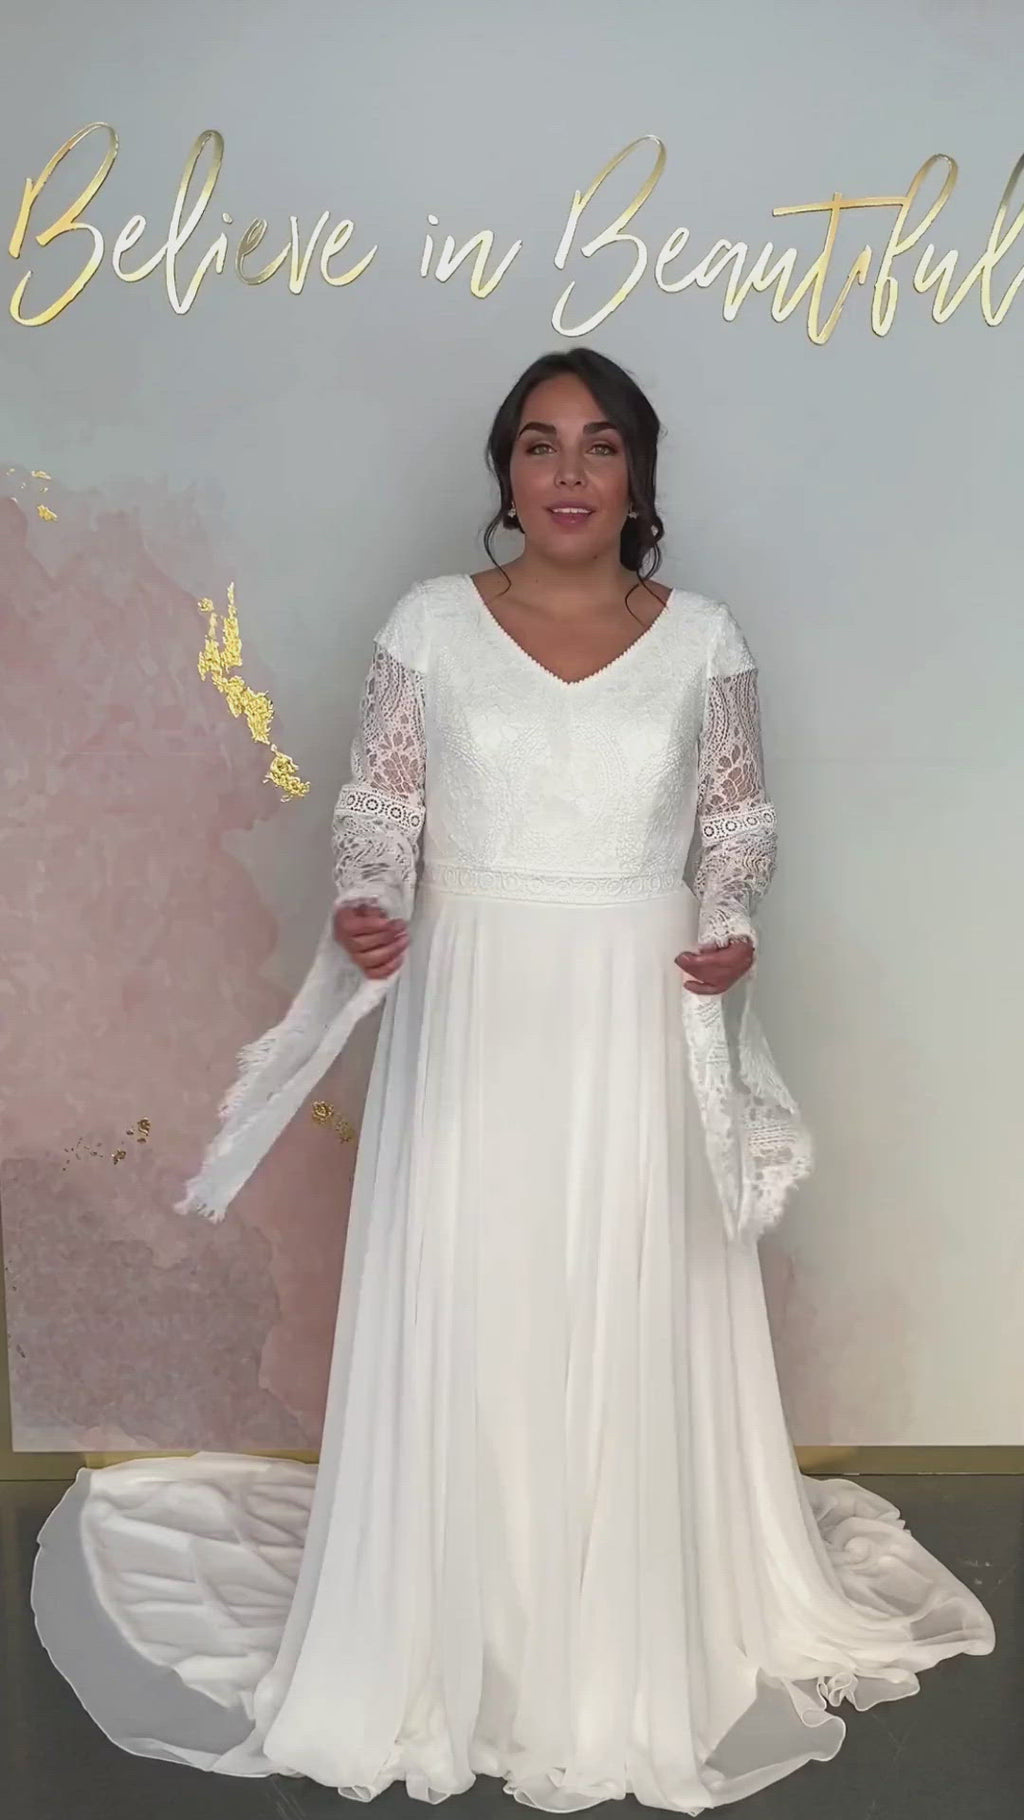 A video featuring our Merida wedding dress and its billowing lace bell sleeves, and flowy chiffon A-line skirt.